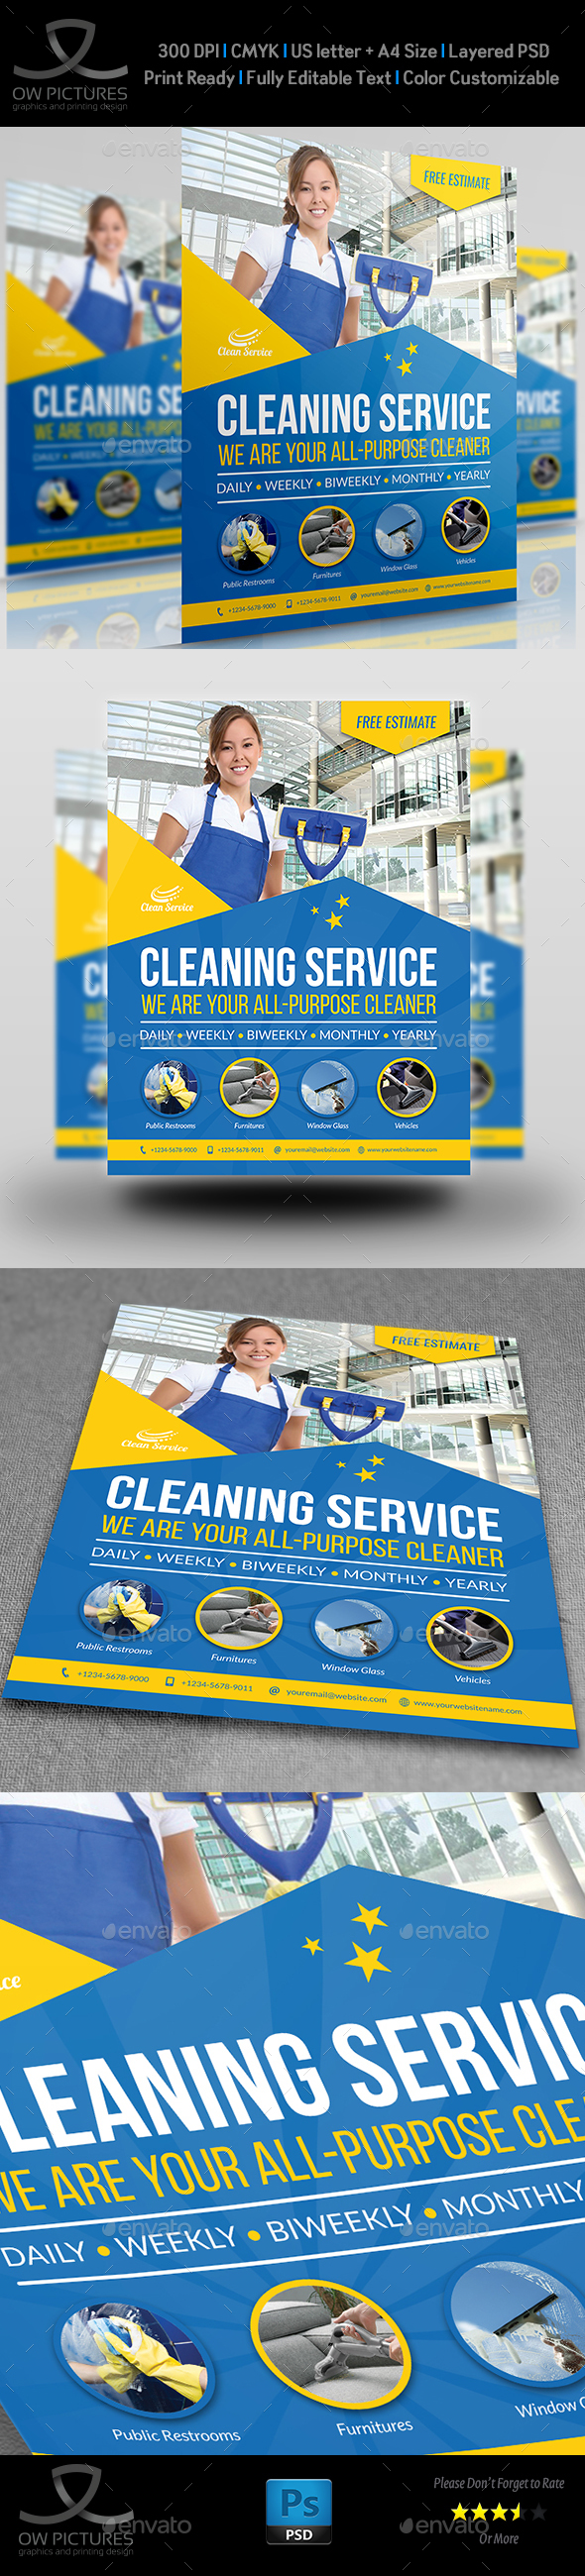 Cleaning Services Flyer Template Vol.4 - Corporate Flyers